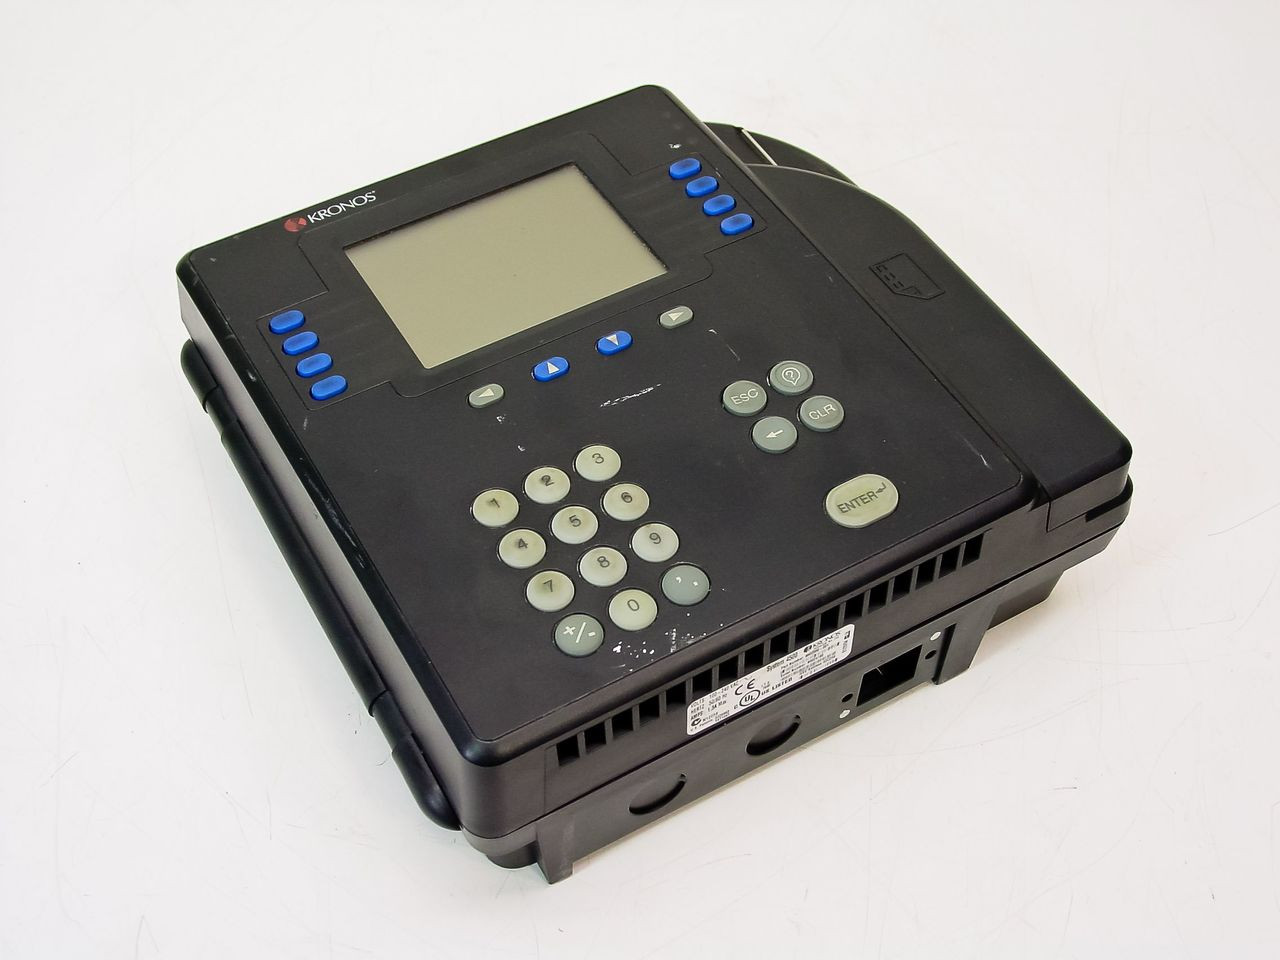 Kronos 480f Time Clock For Sale: Kronos 8602000-001 System 4500 Time Clock With Ethernet